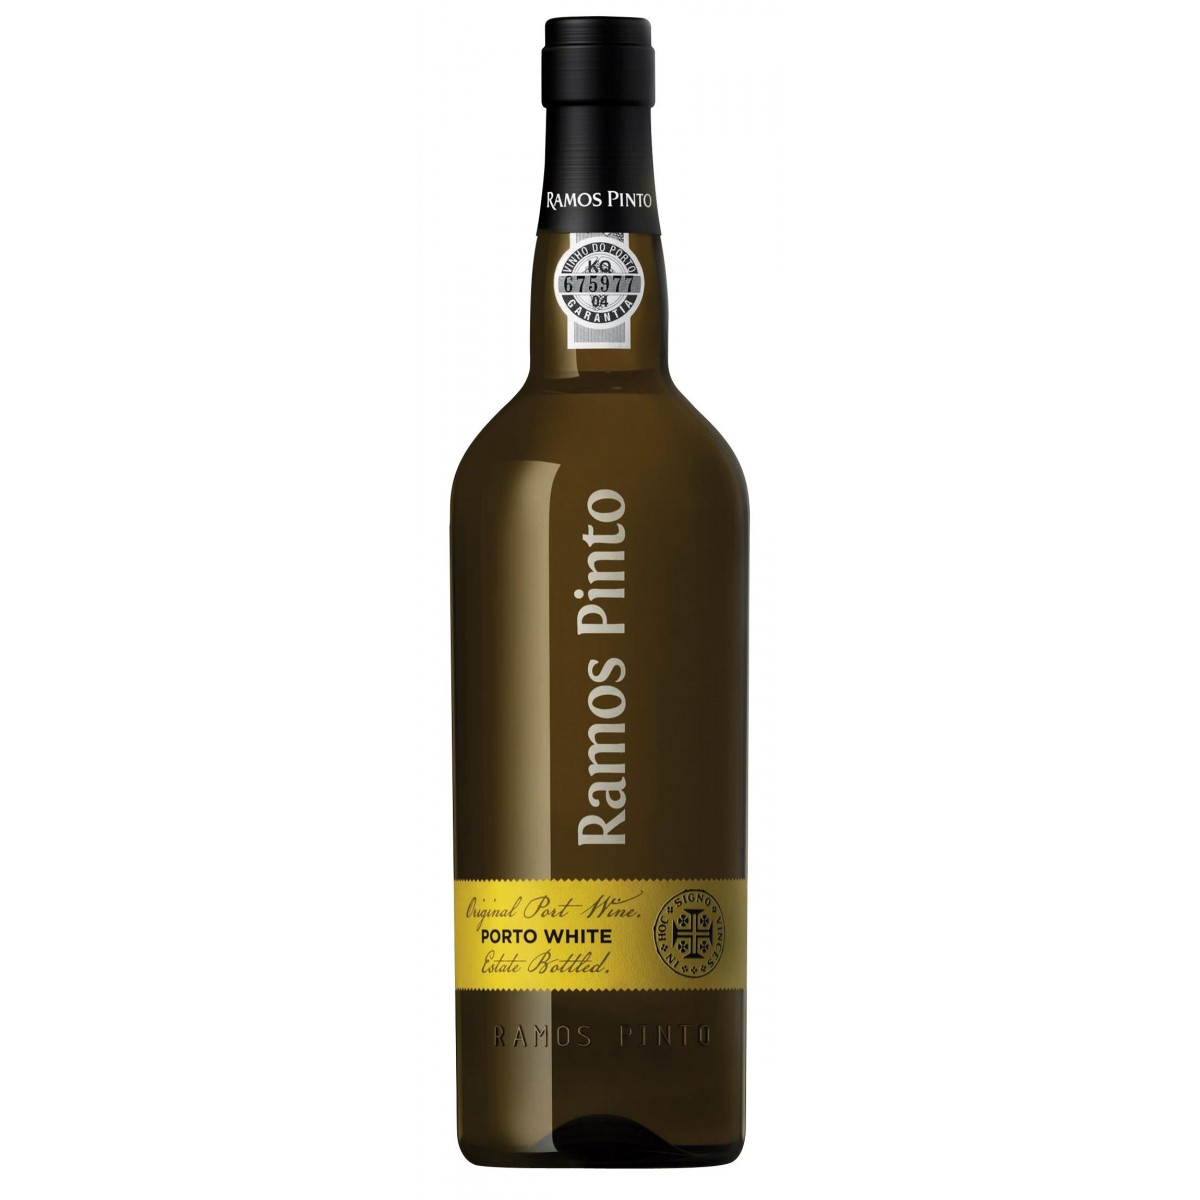 RAMOS PINTO WHITE PORT 750ml